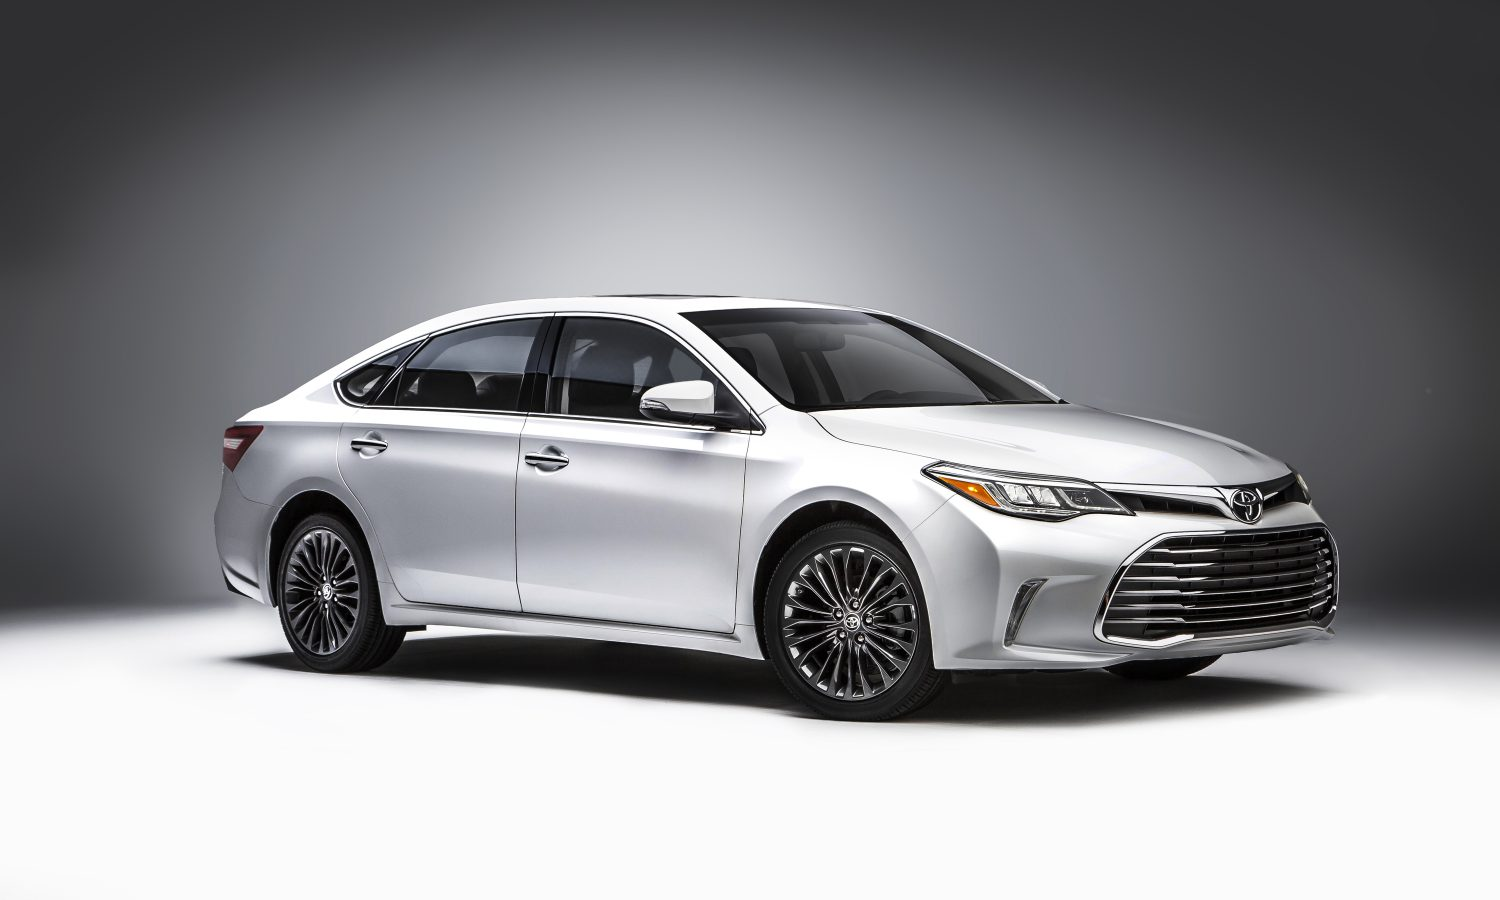 2015 Chicago Auto Show – 2016 Toyota Avalon Reveal